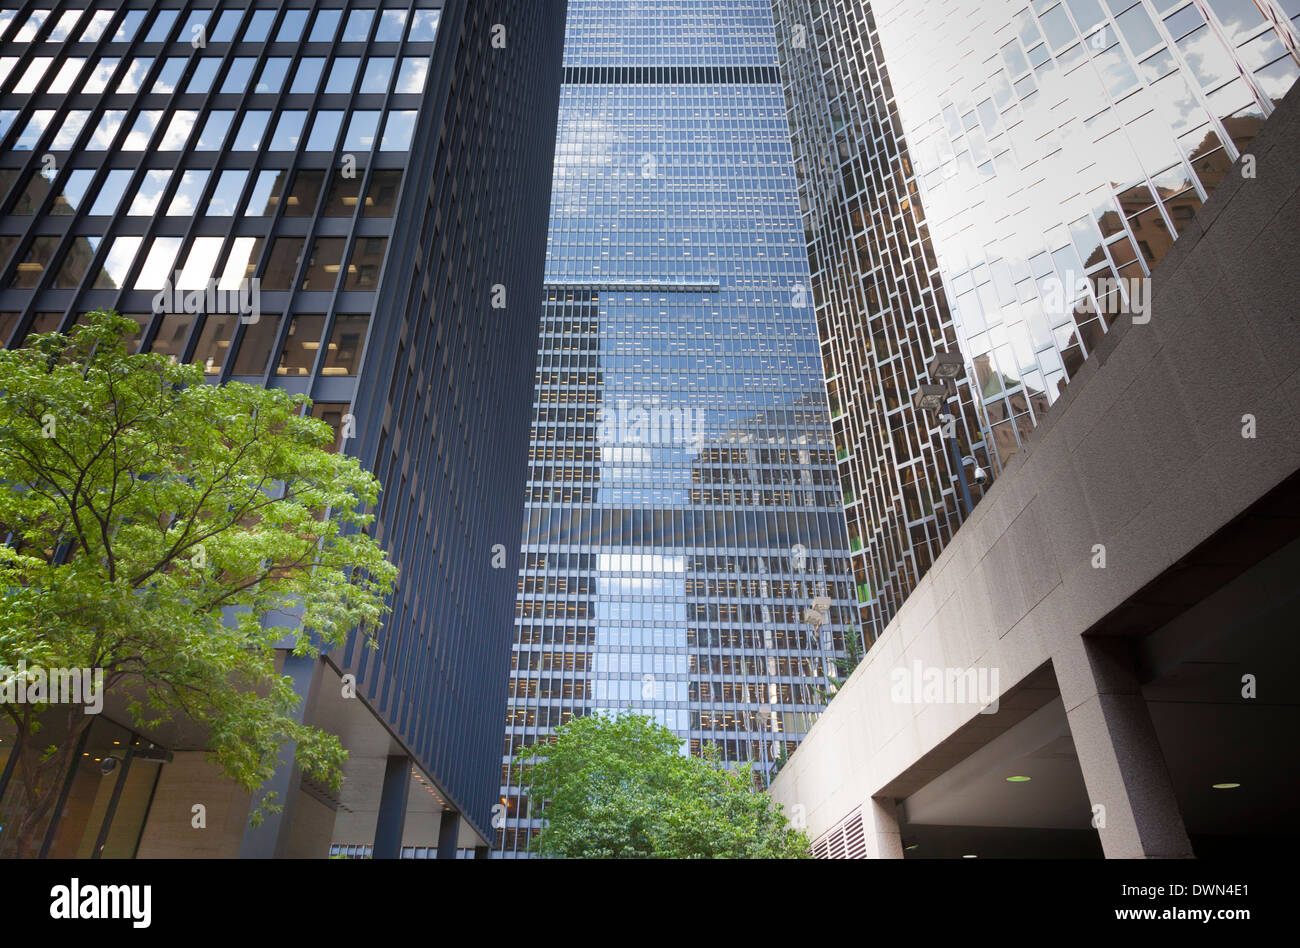 Looking up at the high rise buildings of the business district in down-town Toronto. - Stock Image